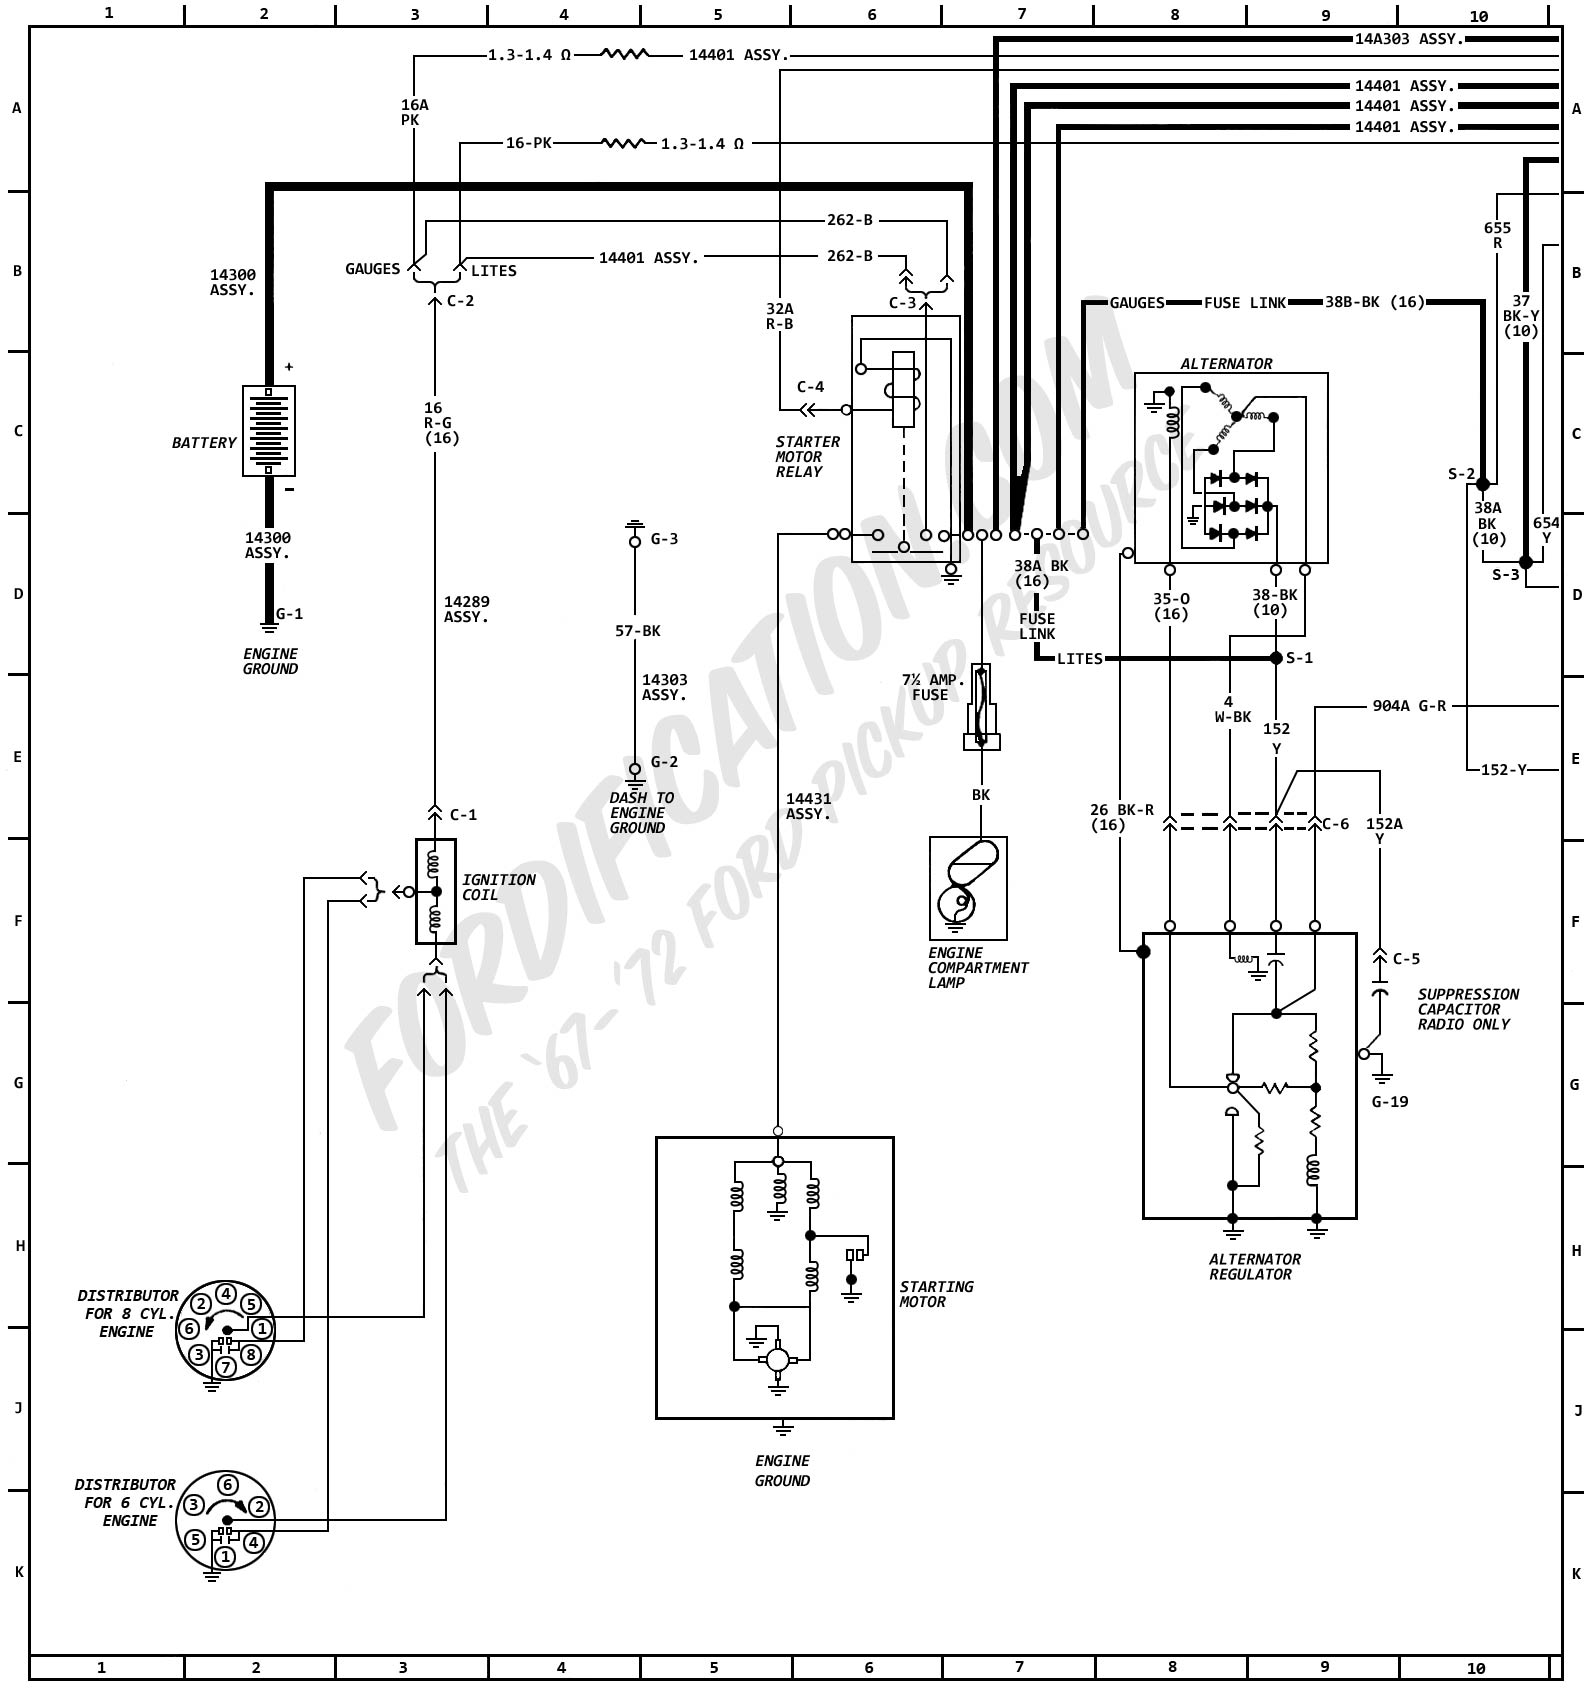 1972 chevy c10 headlight wiring diagram